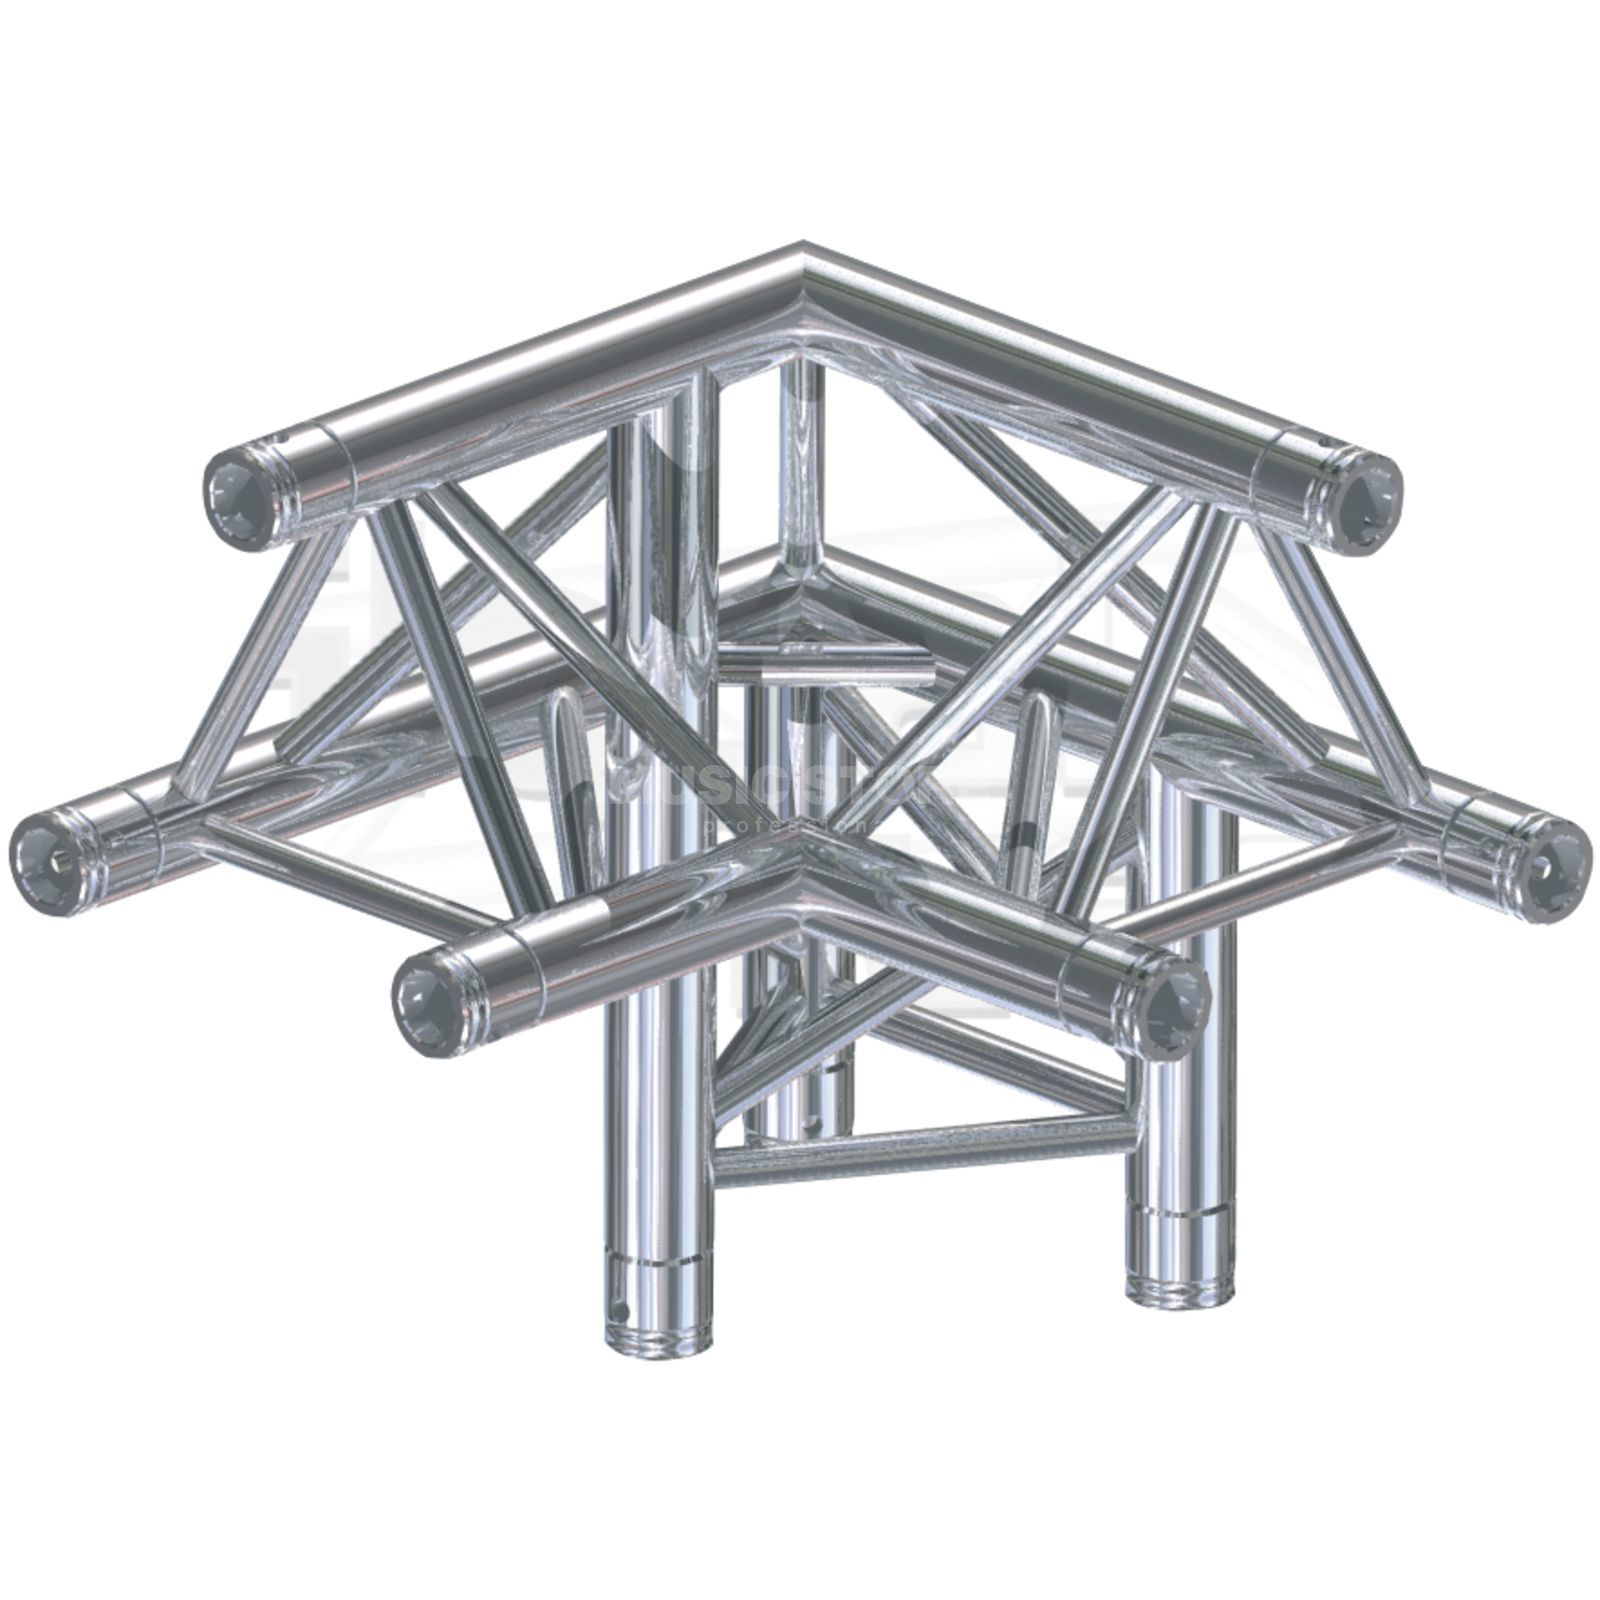 Global Truss F33 LU90 Corner C31 3-Point Produktbillede